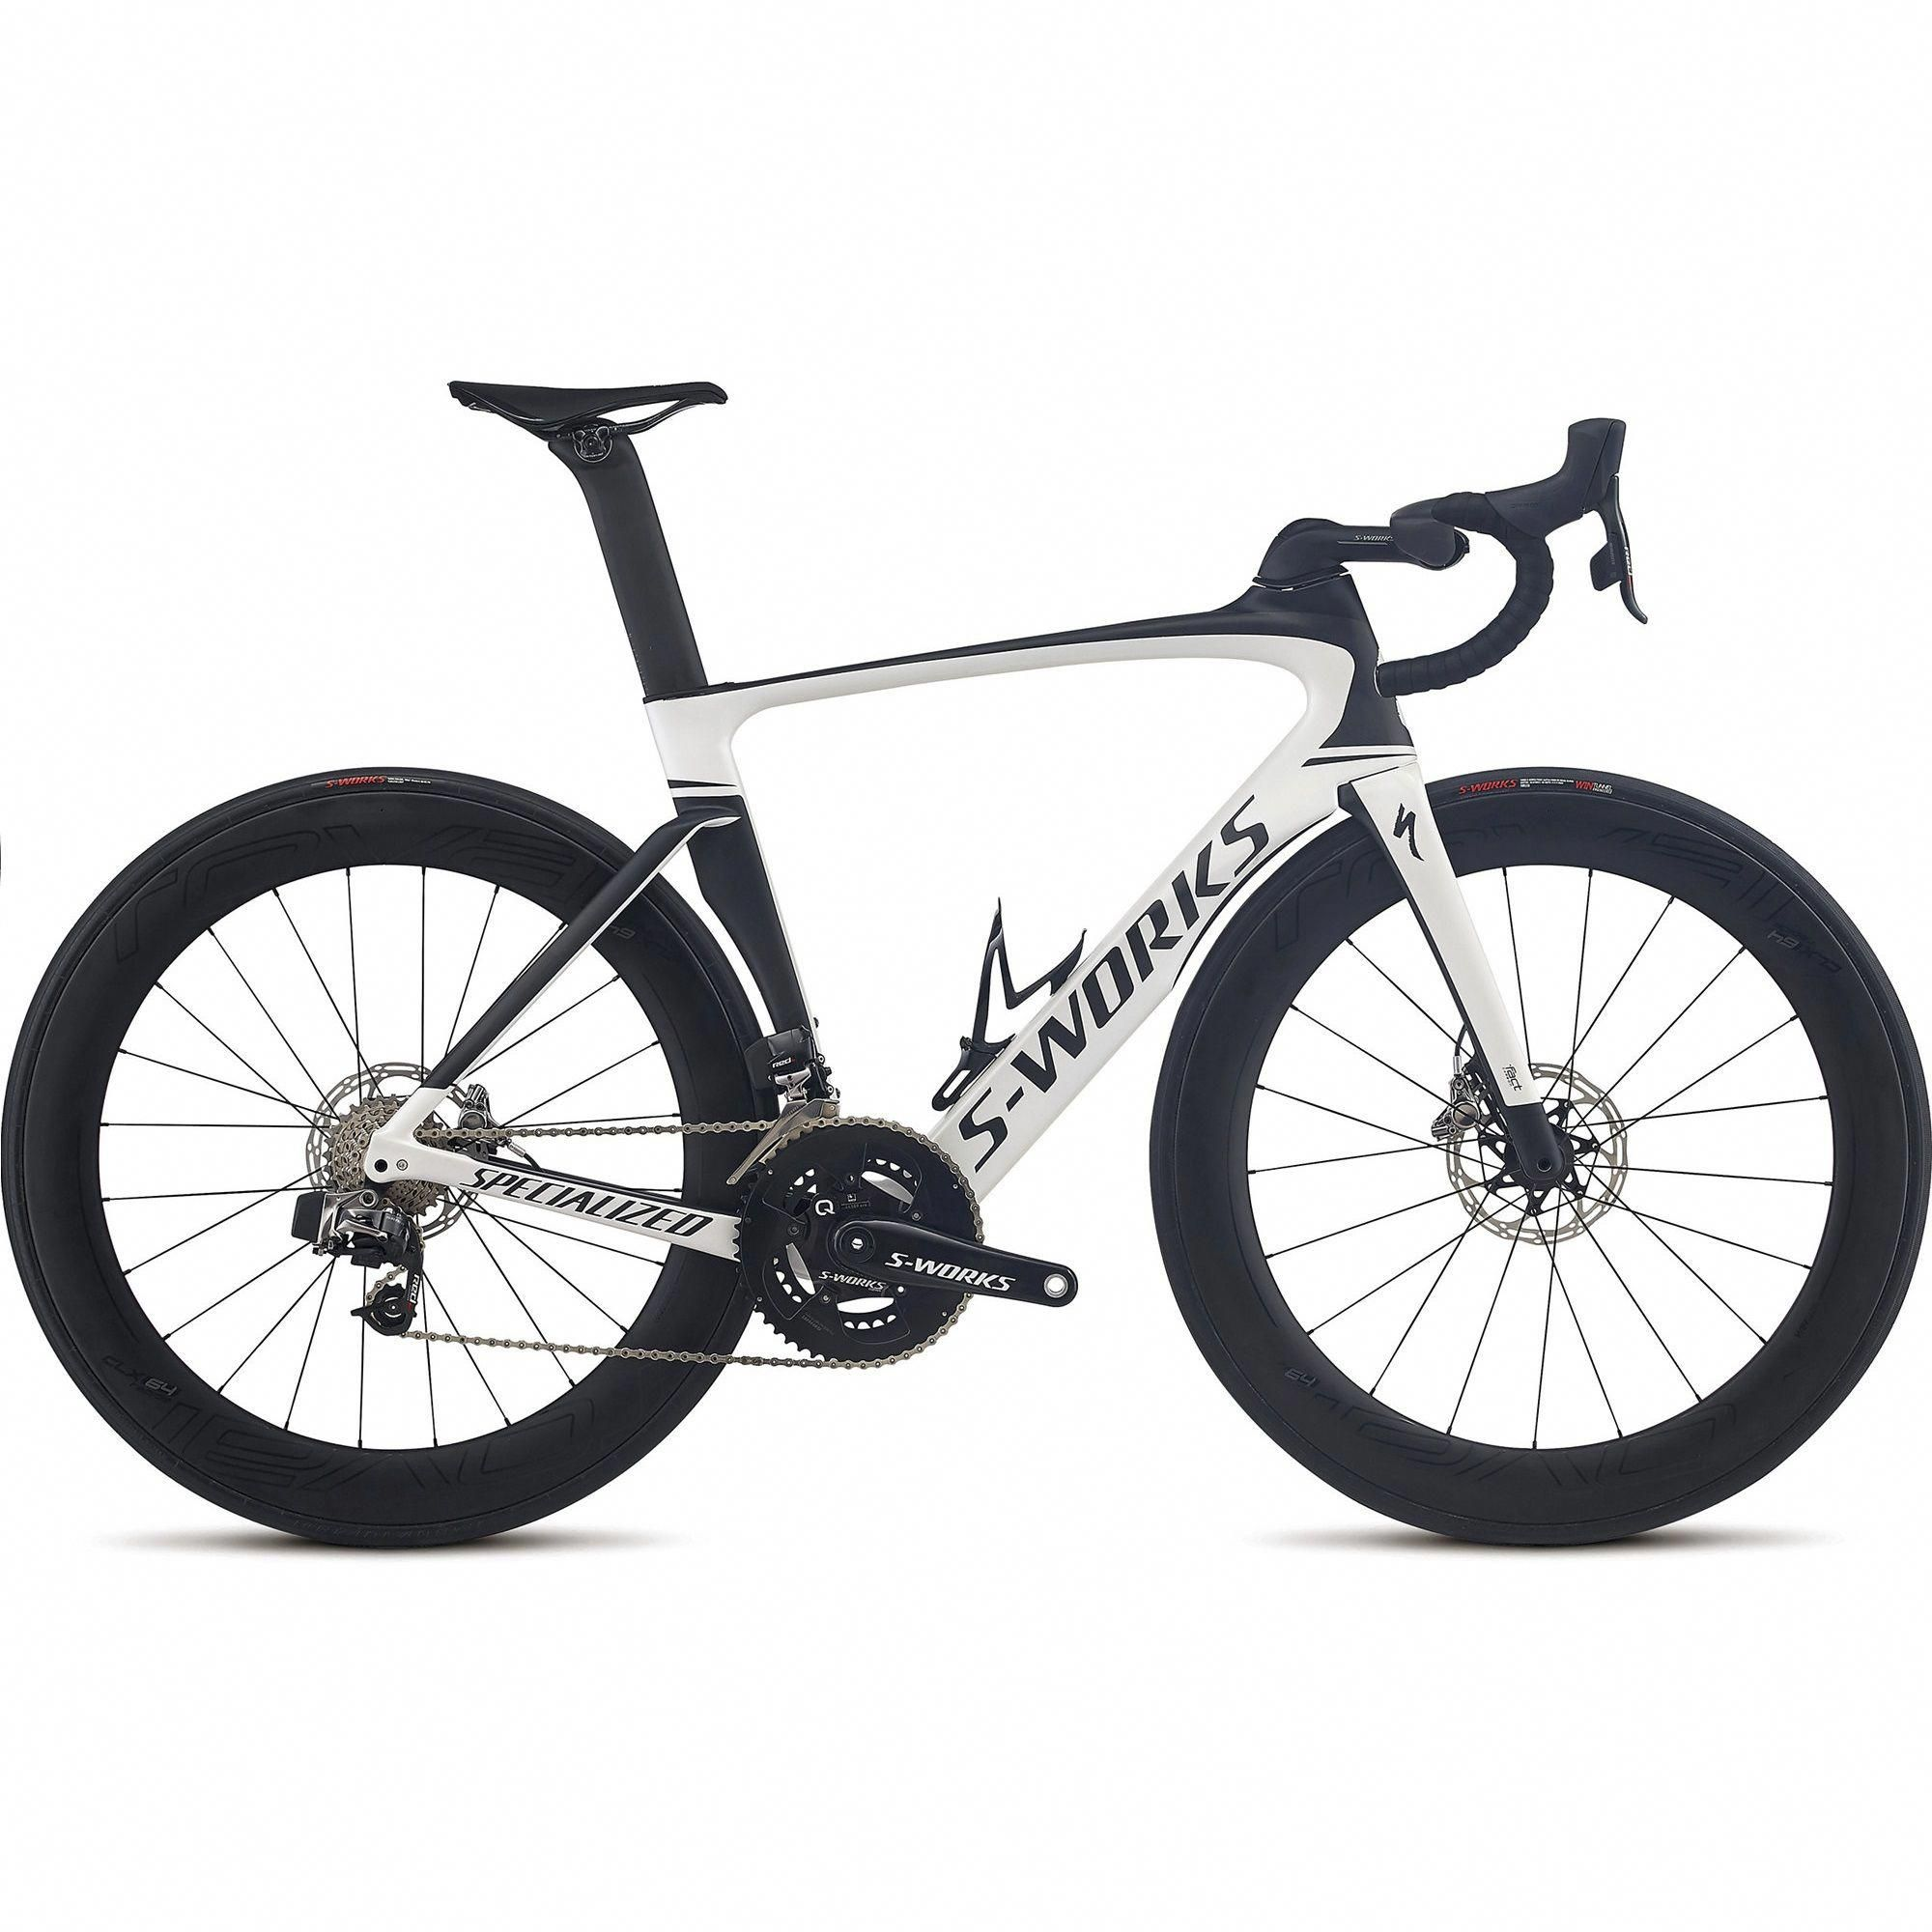 Specialized S Works Venge Disc Vias Etap 2018 Road Bike On Sale In The Uk Along With Best Deals On Many Other Cycling And Cy Bicycle Bicycle Maintenance Bike